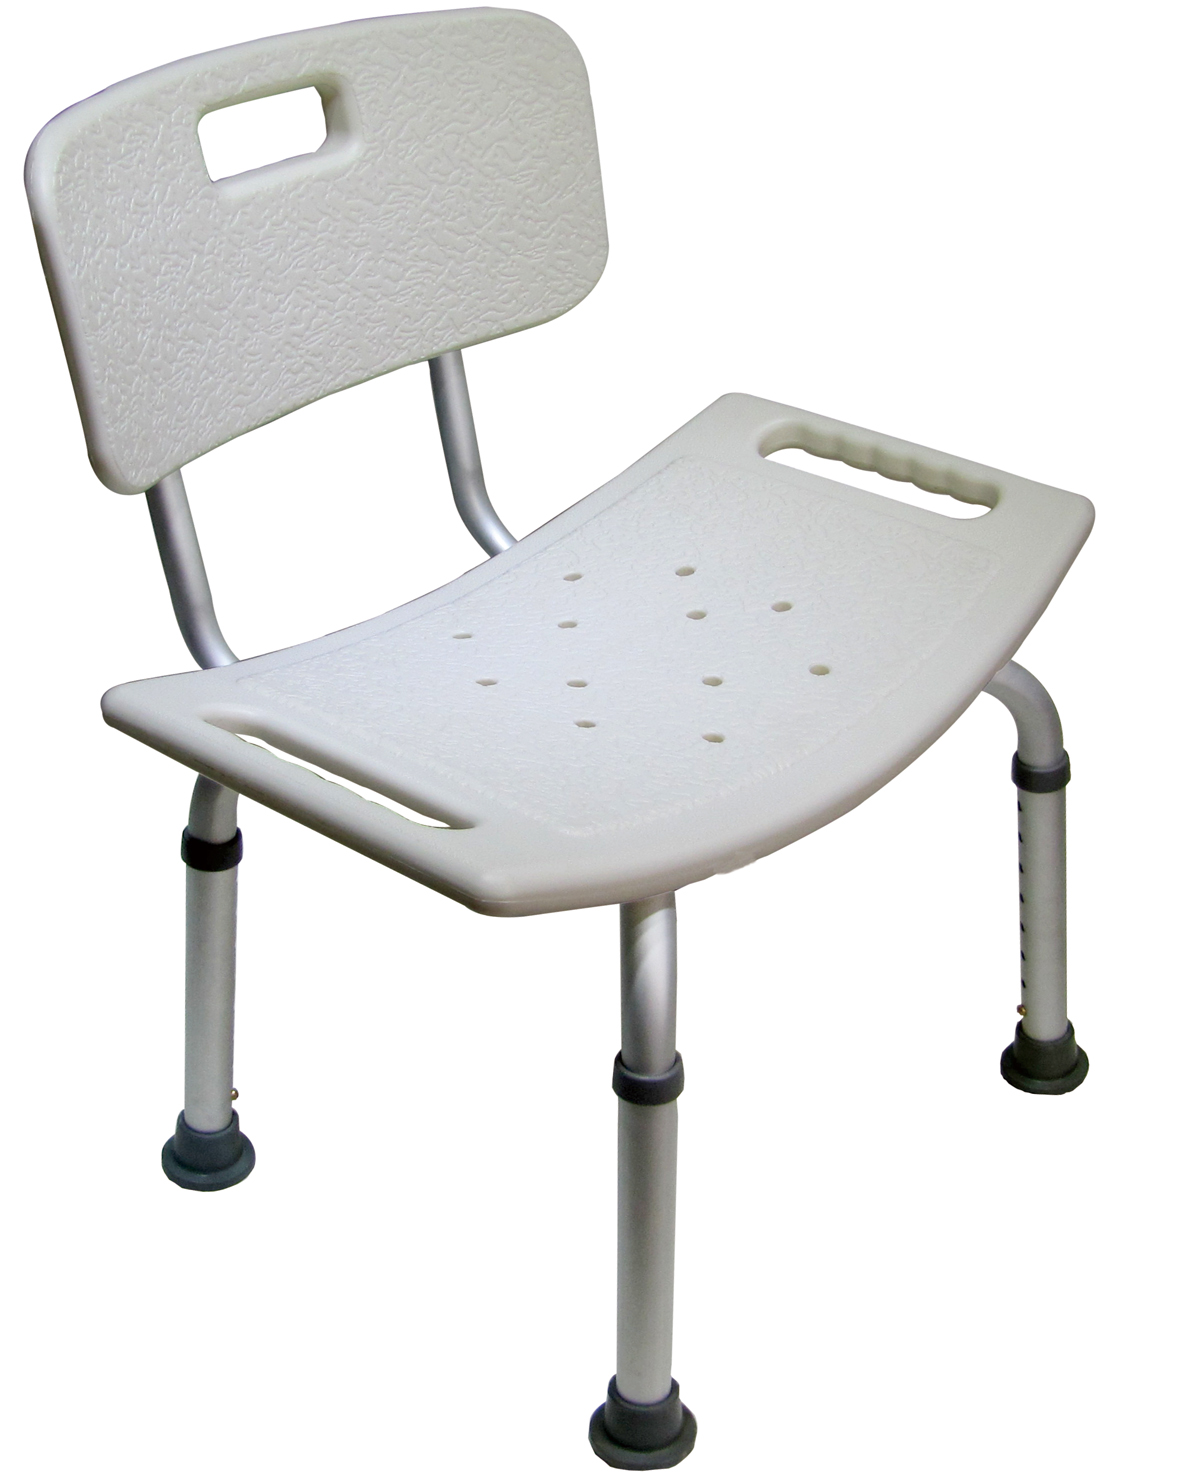 shower chair target